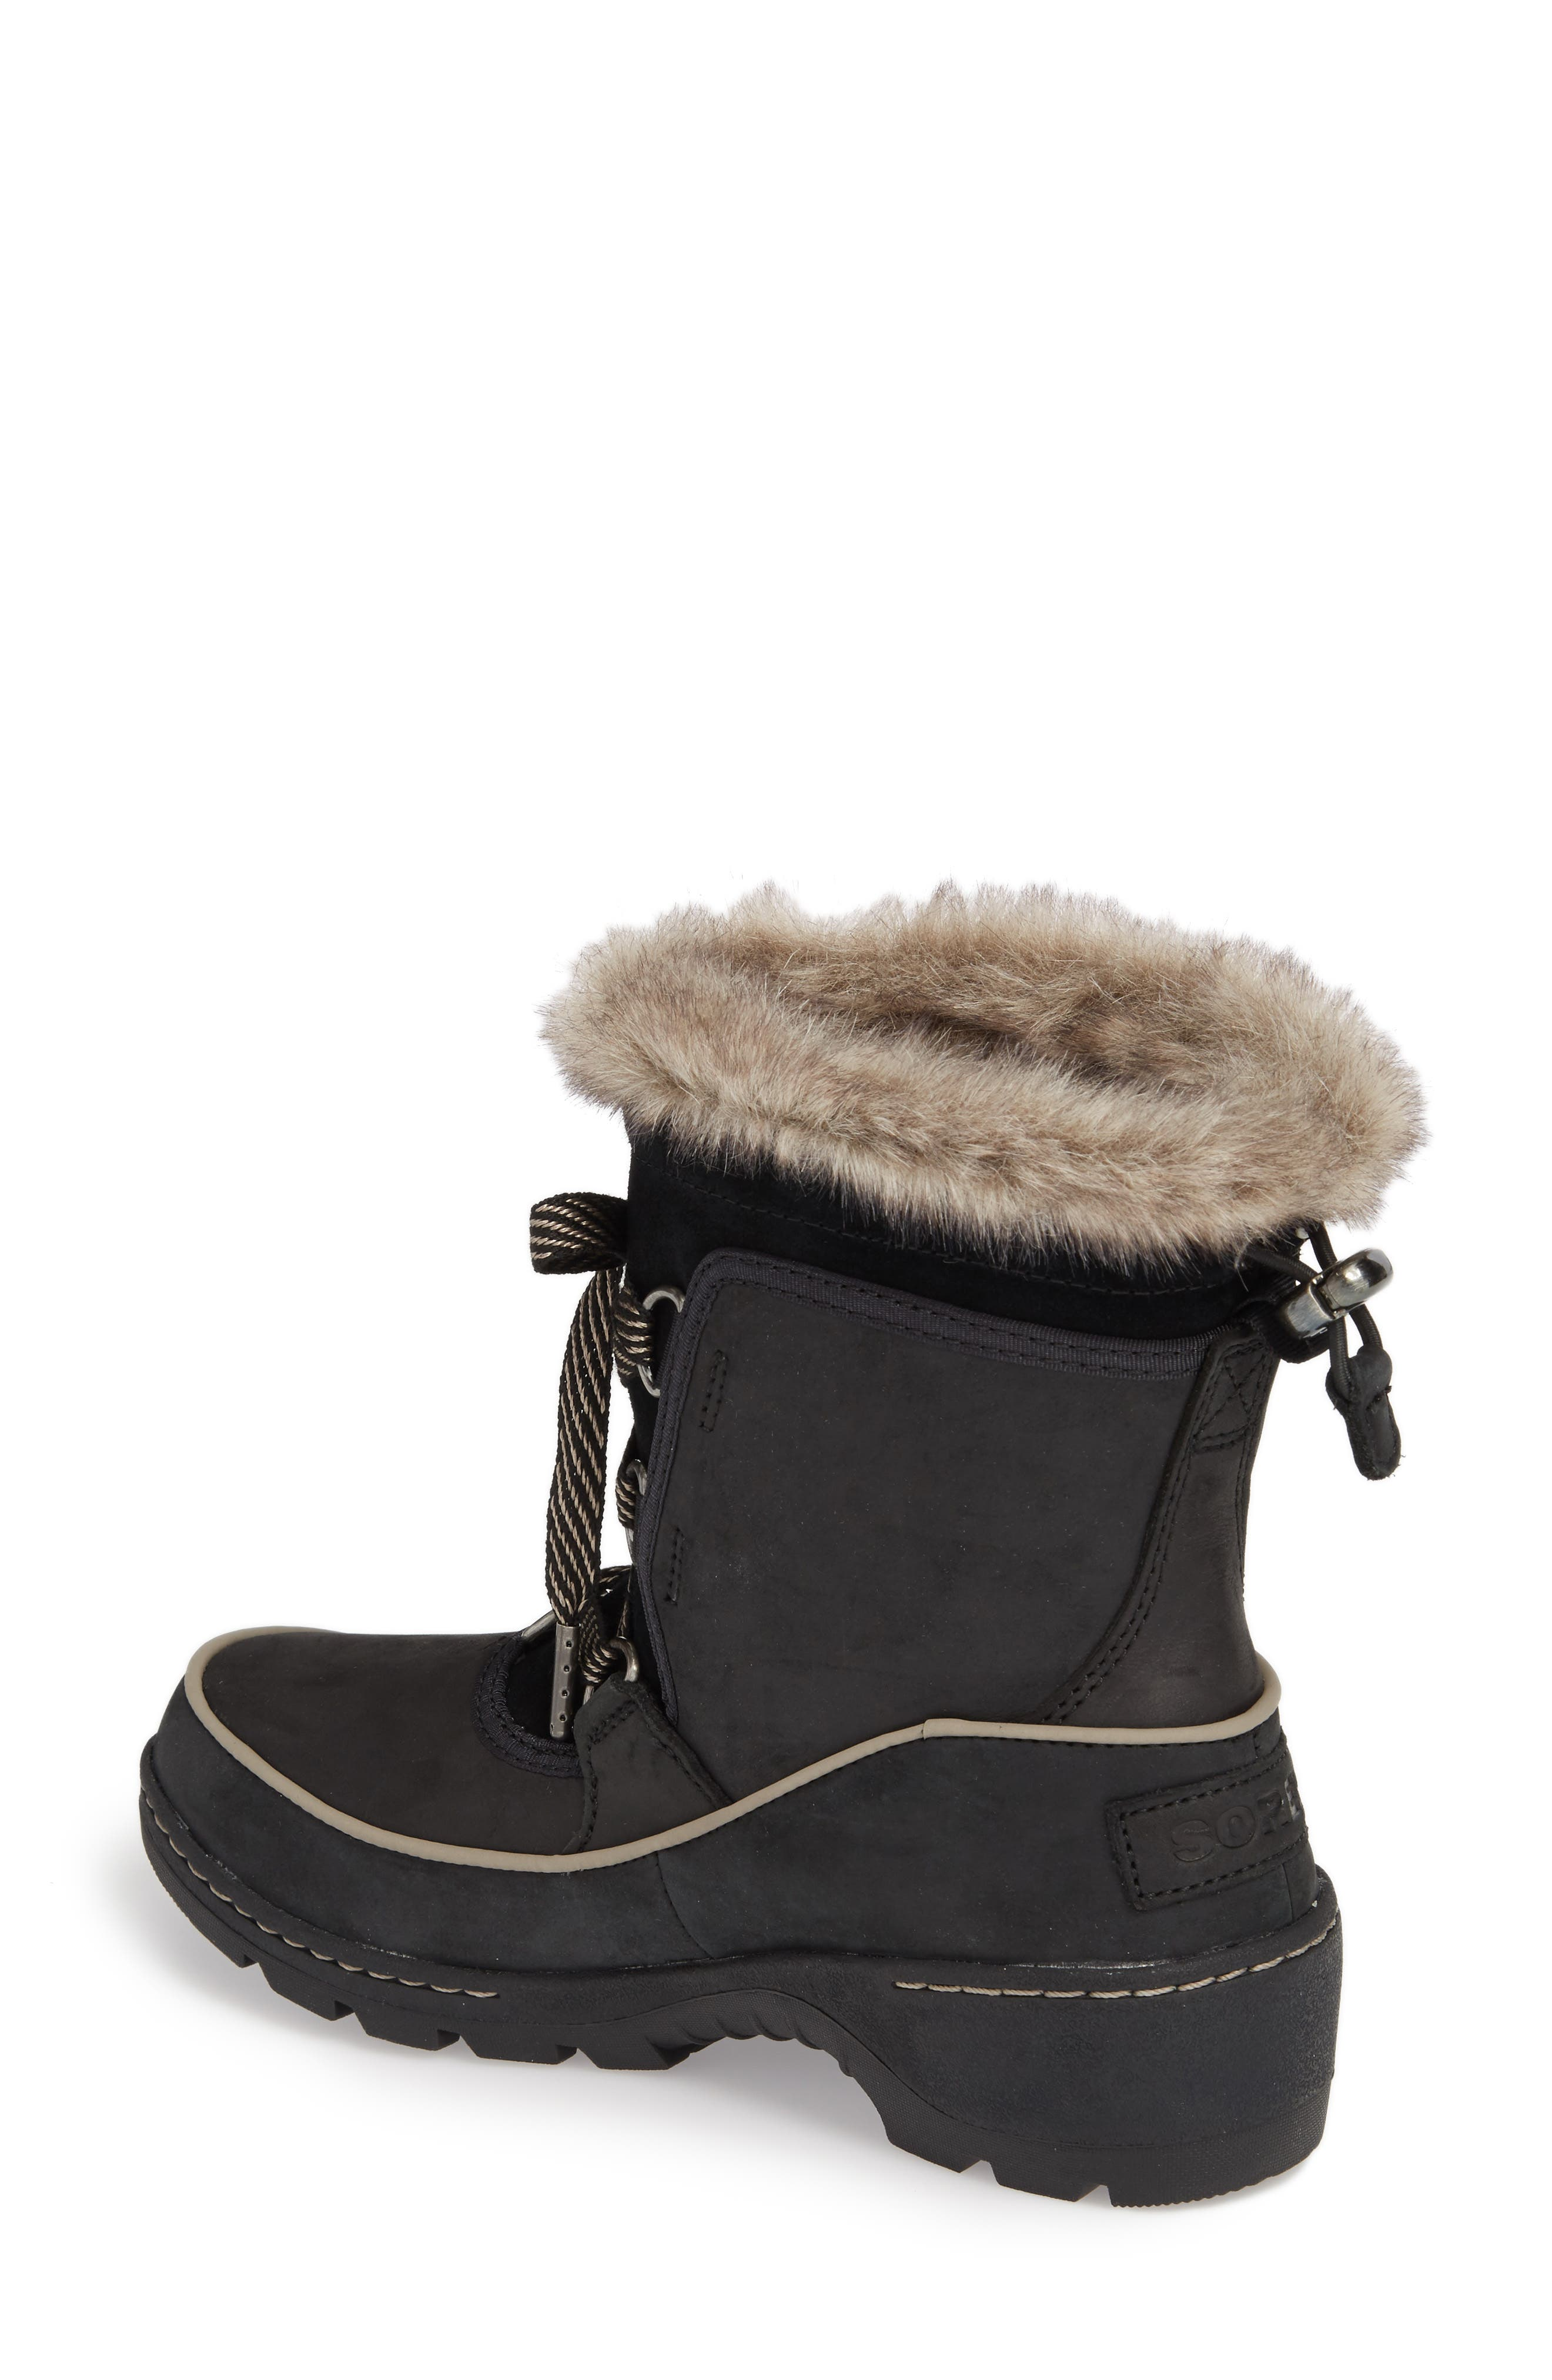 Tivoli II Insulated Winter Boot with Faux Fur Trim,                             Alternate thumbnail 3, color,